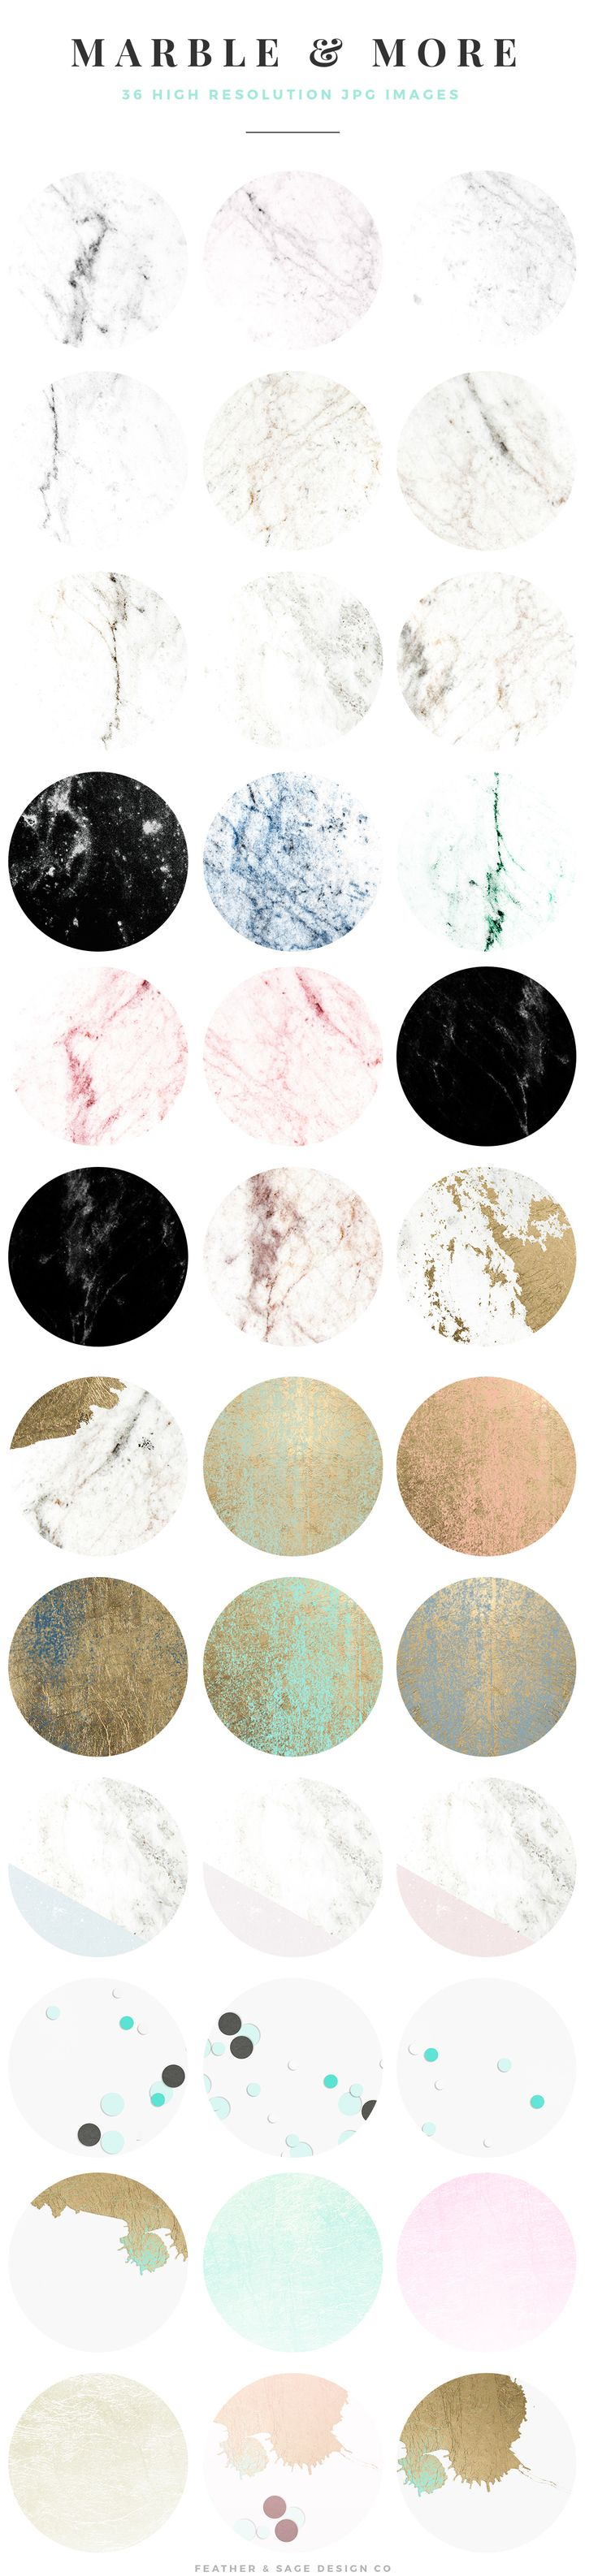 Marble & More Background Images by Feather & Sage